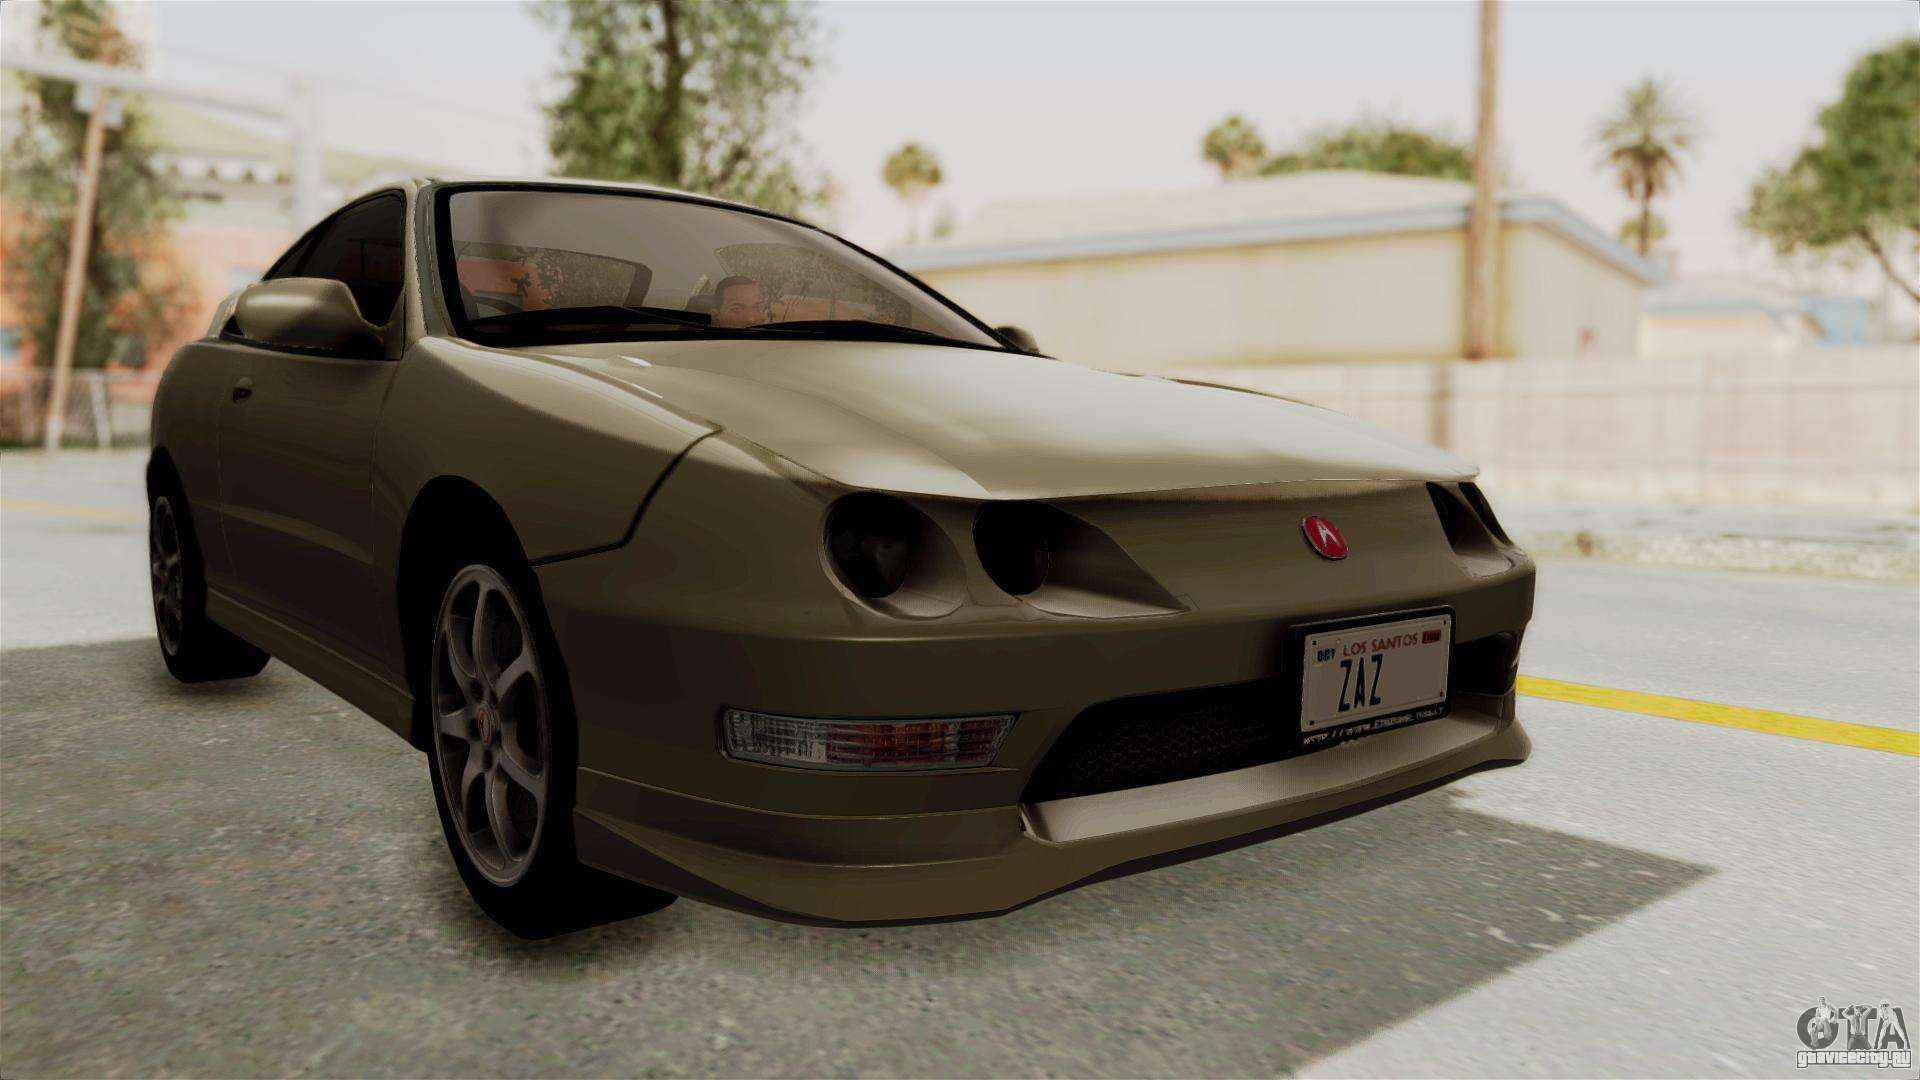 integra likewise fast and - photo #17